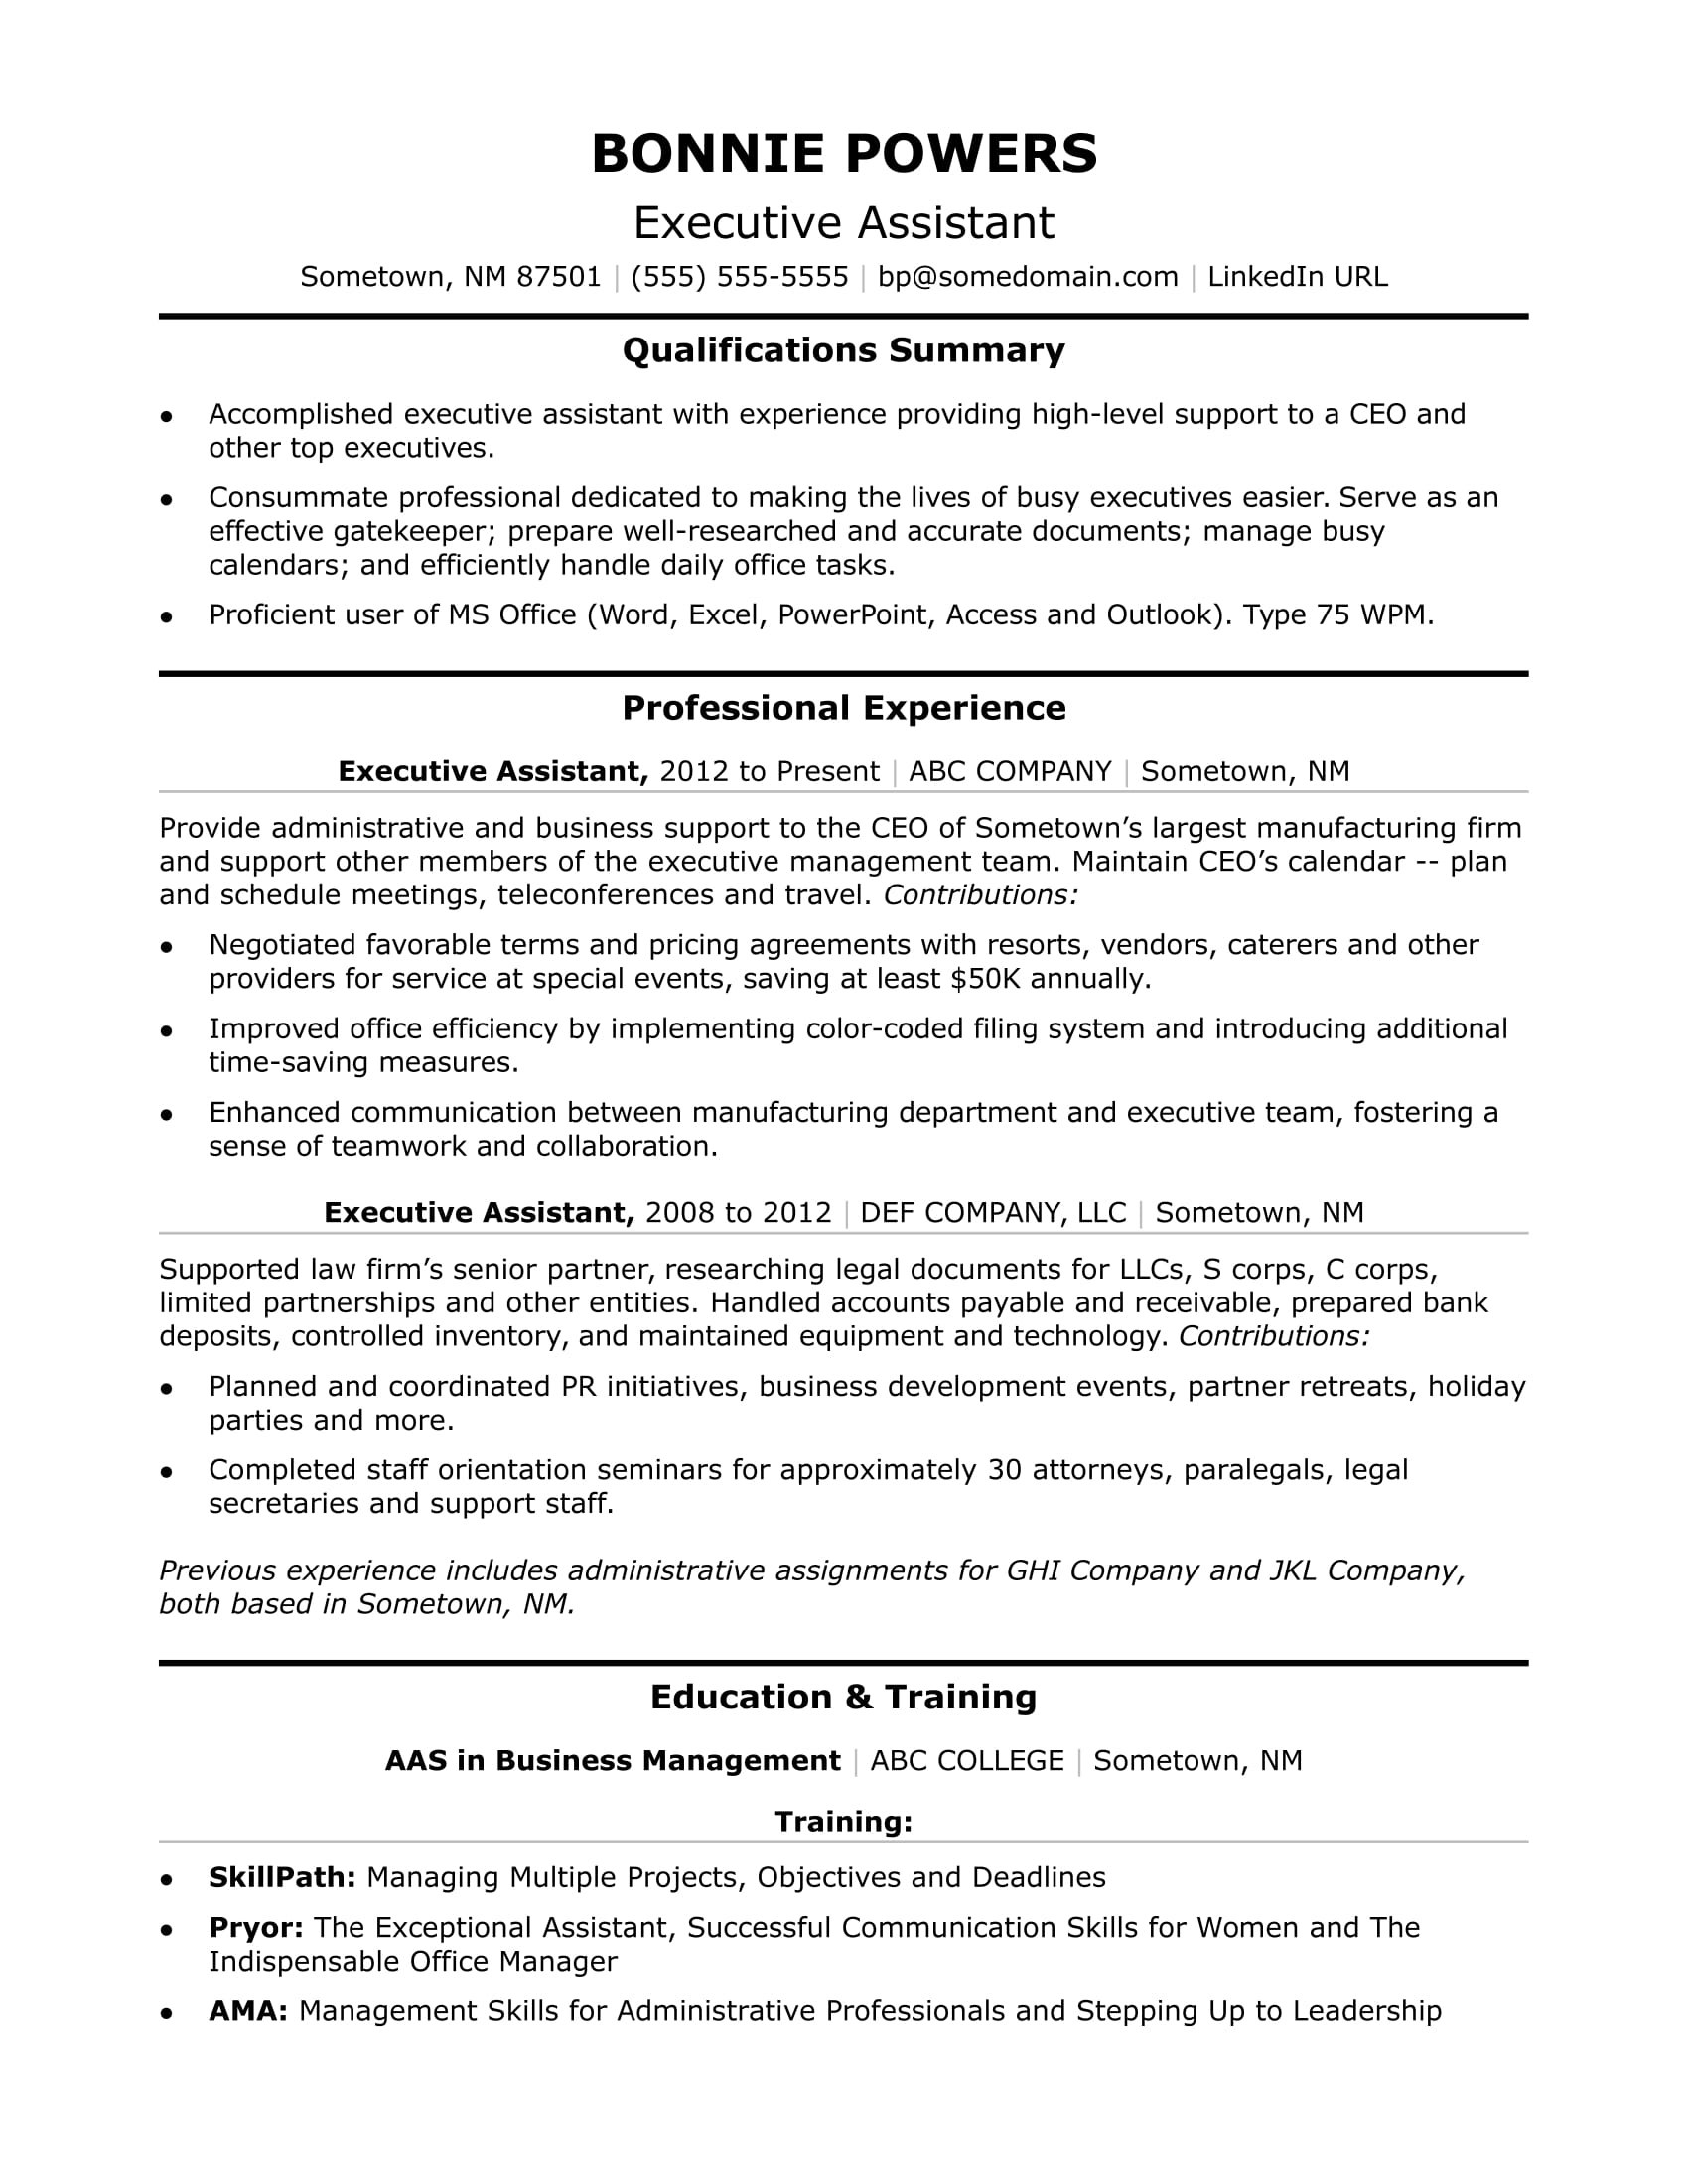 executive administrative assistant resume sample monster professional engineer template Resume Professional Administrative Assistant Resume